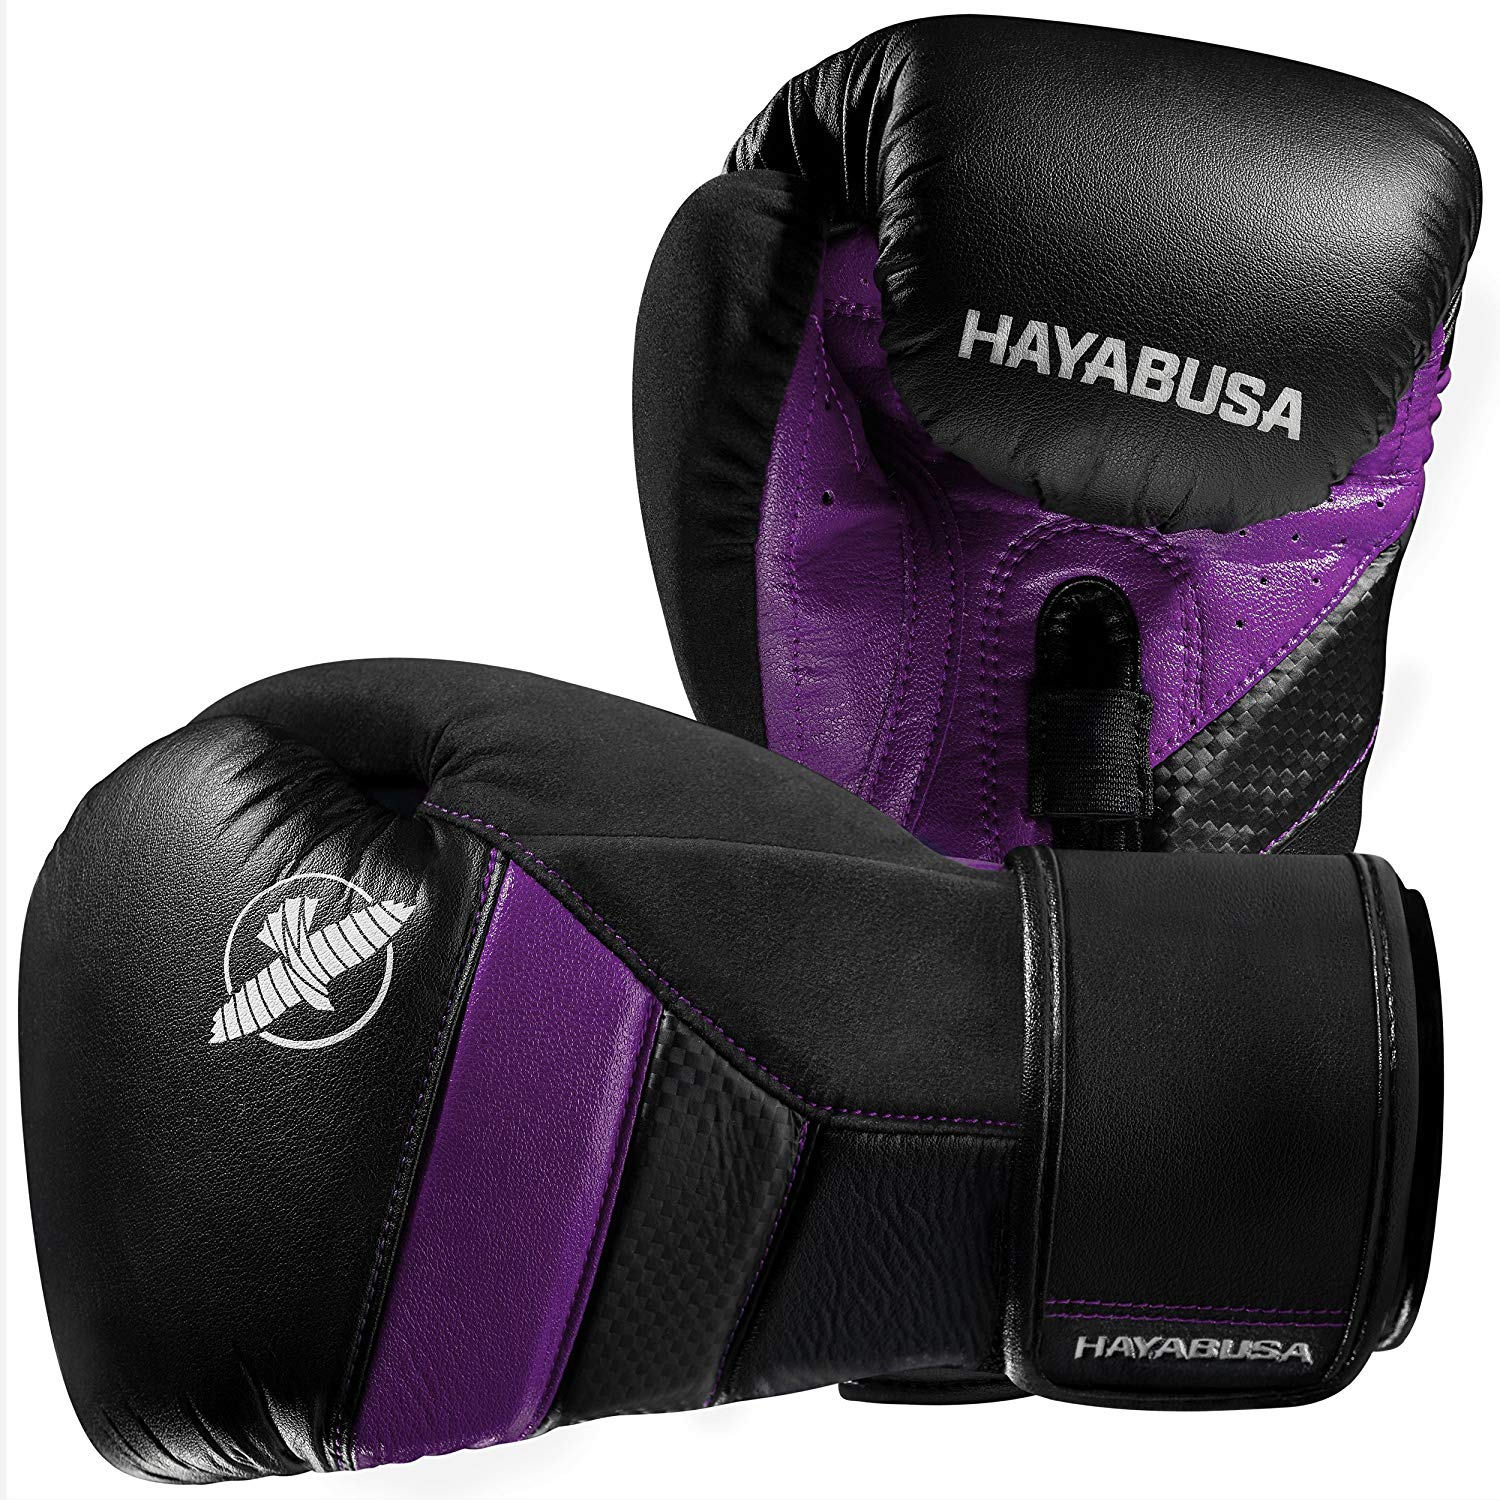 Best Boxing Gloves 2019 Top 10 Best Boxing Gloves in 2019   TopReviewProducts